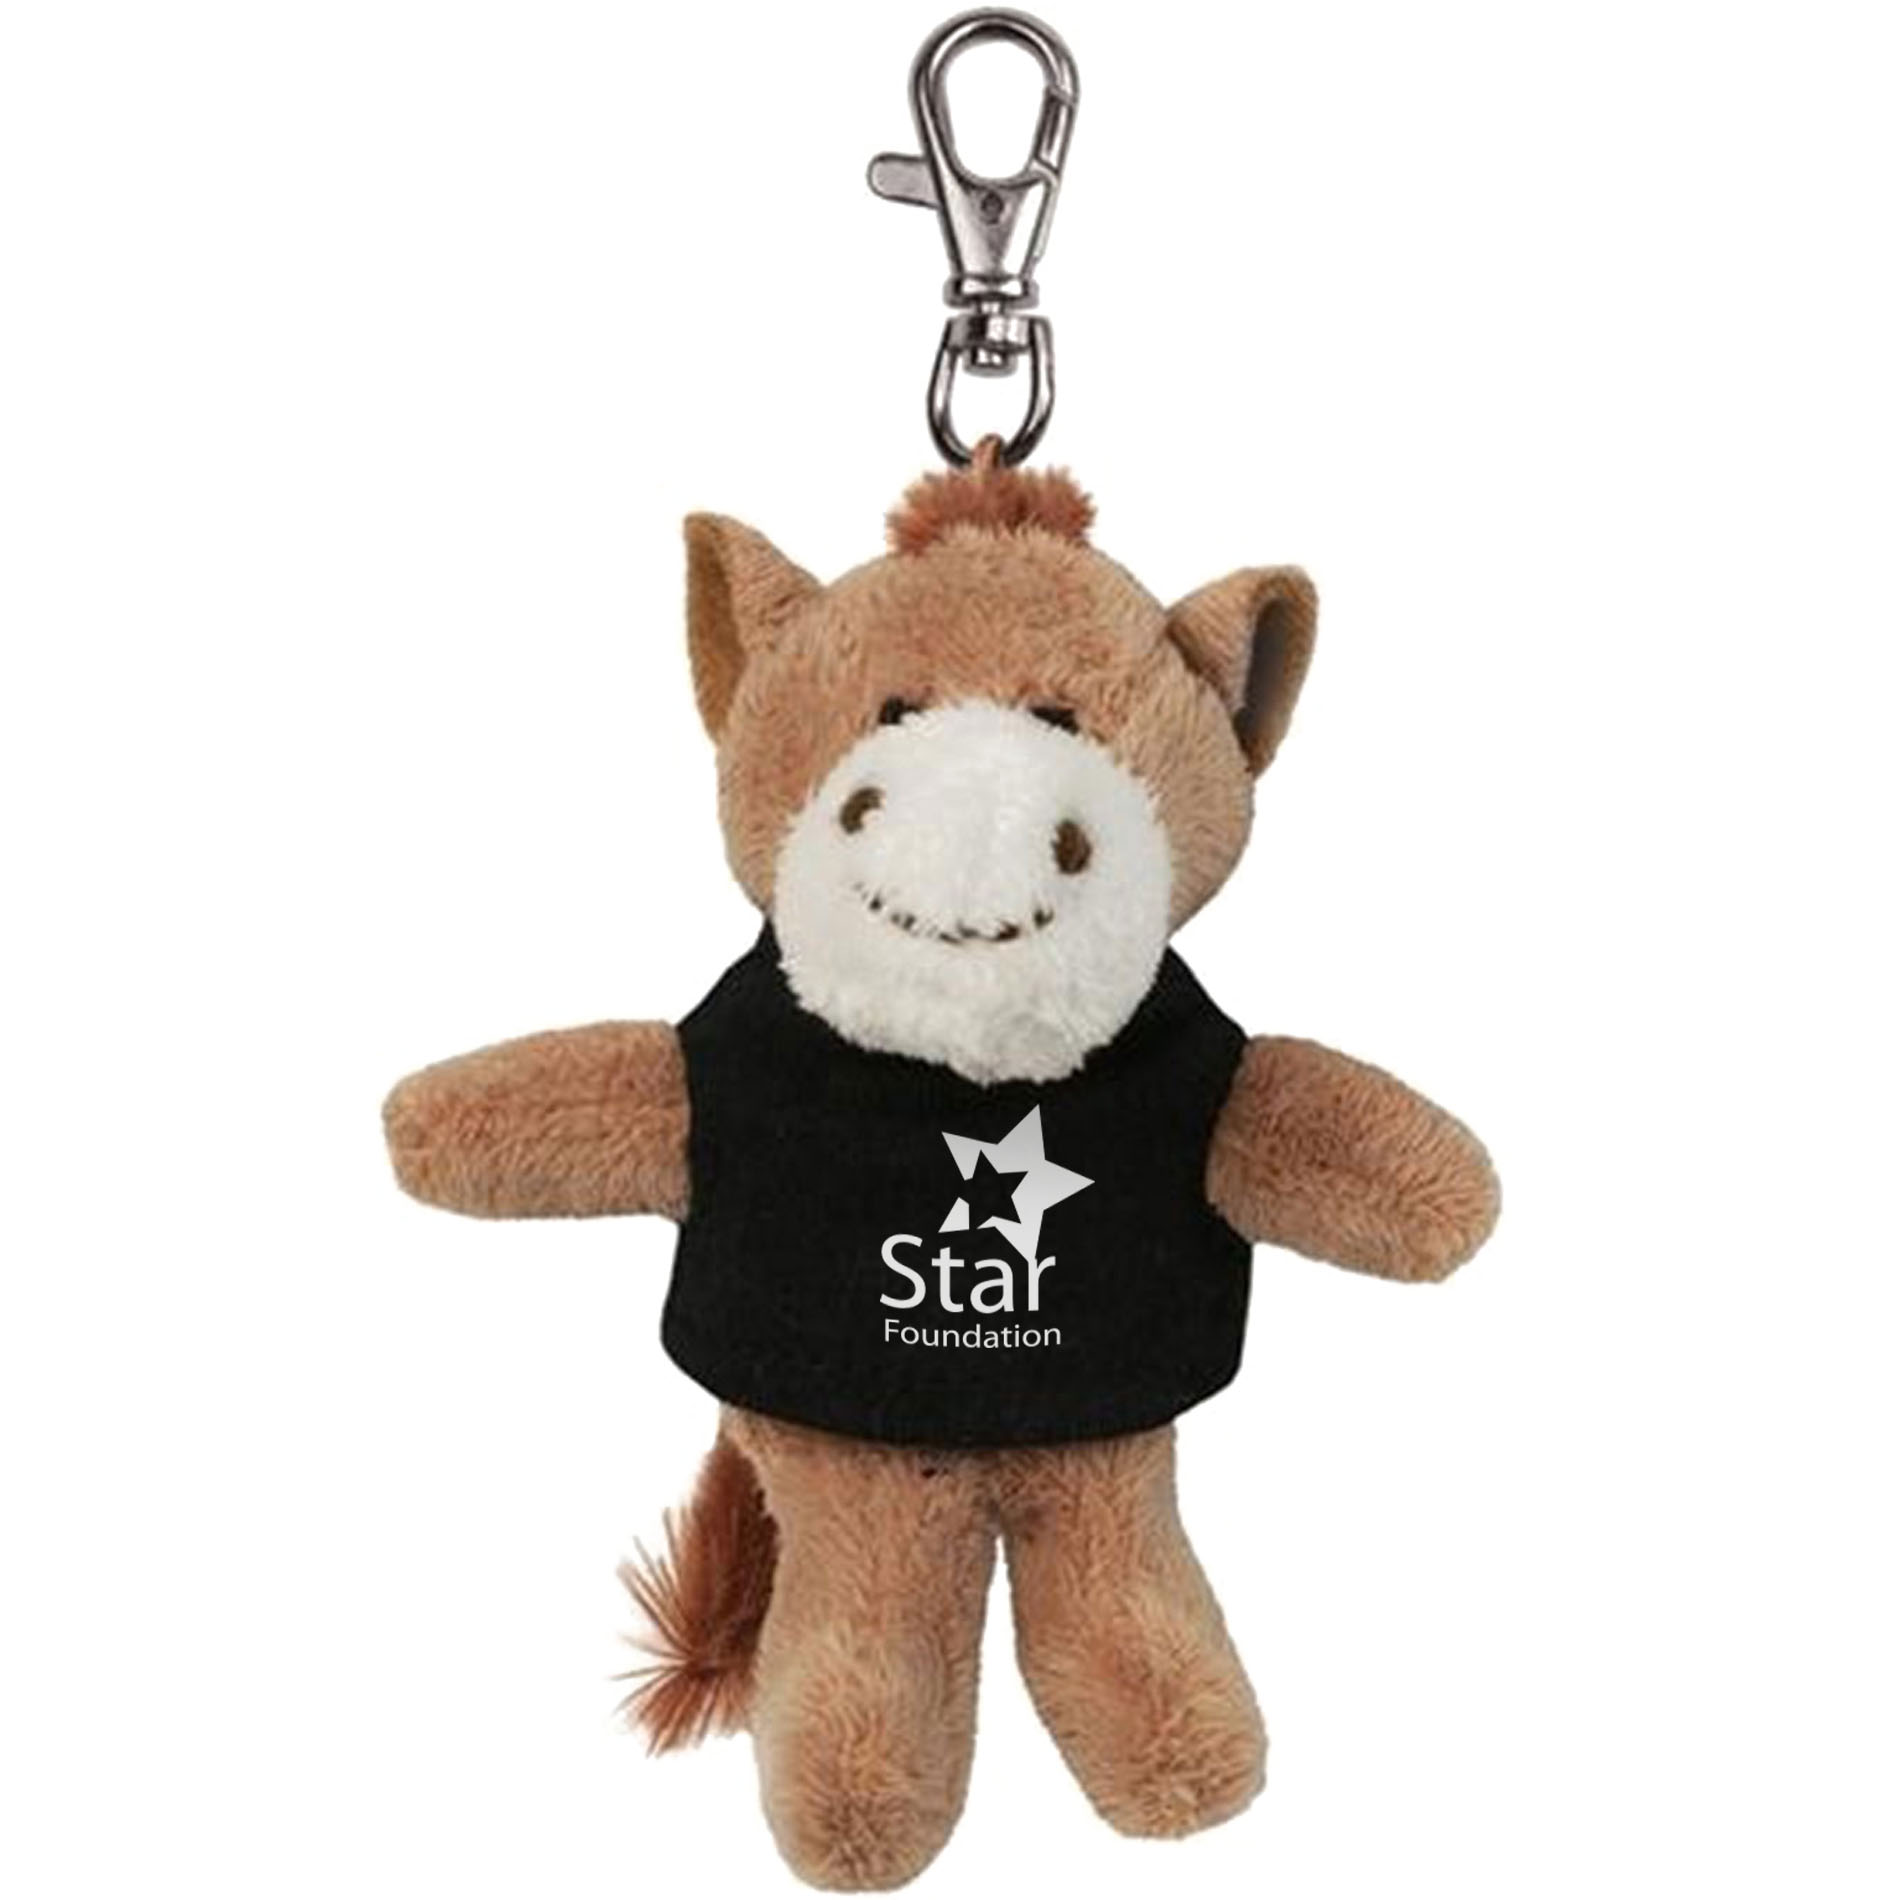 Horse Wild Bunch Plush Key Tag